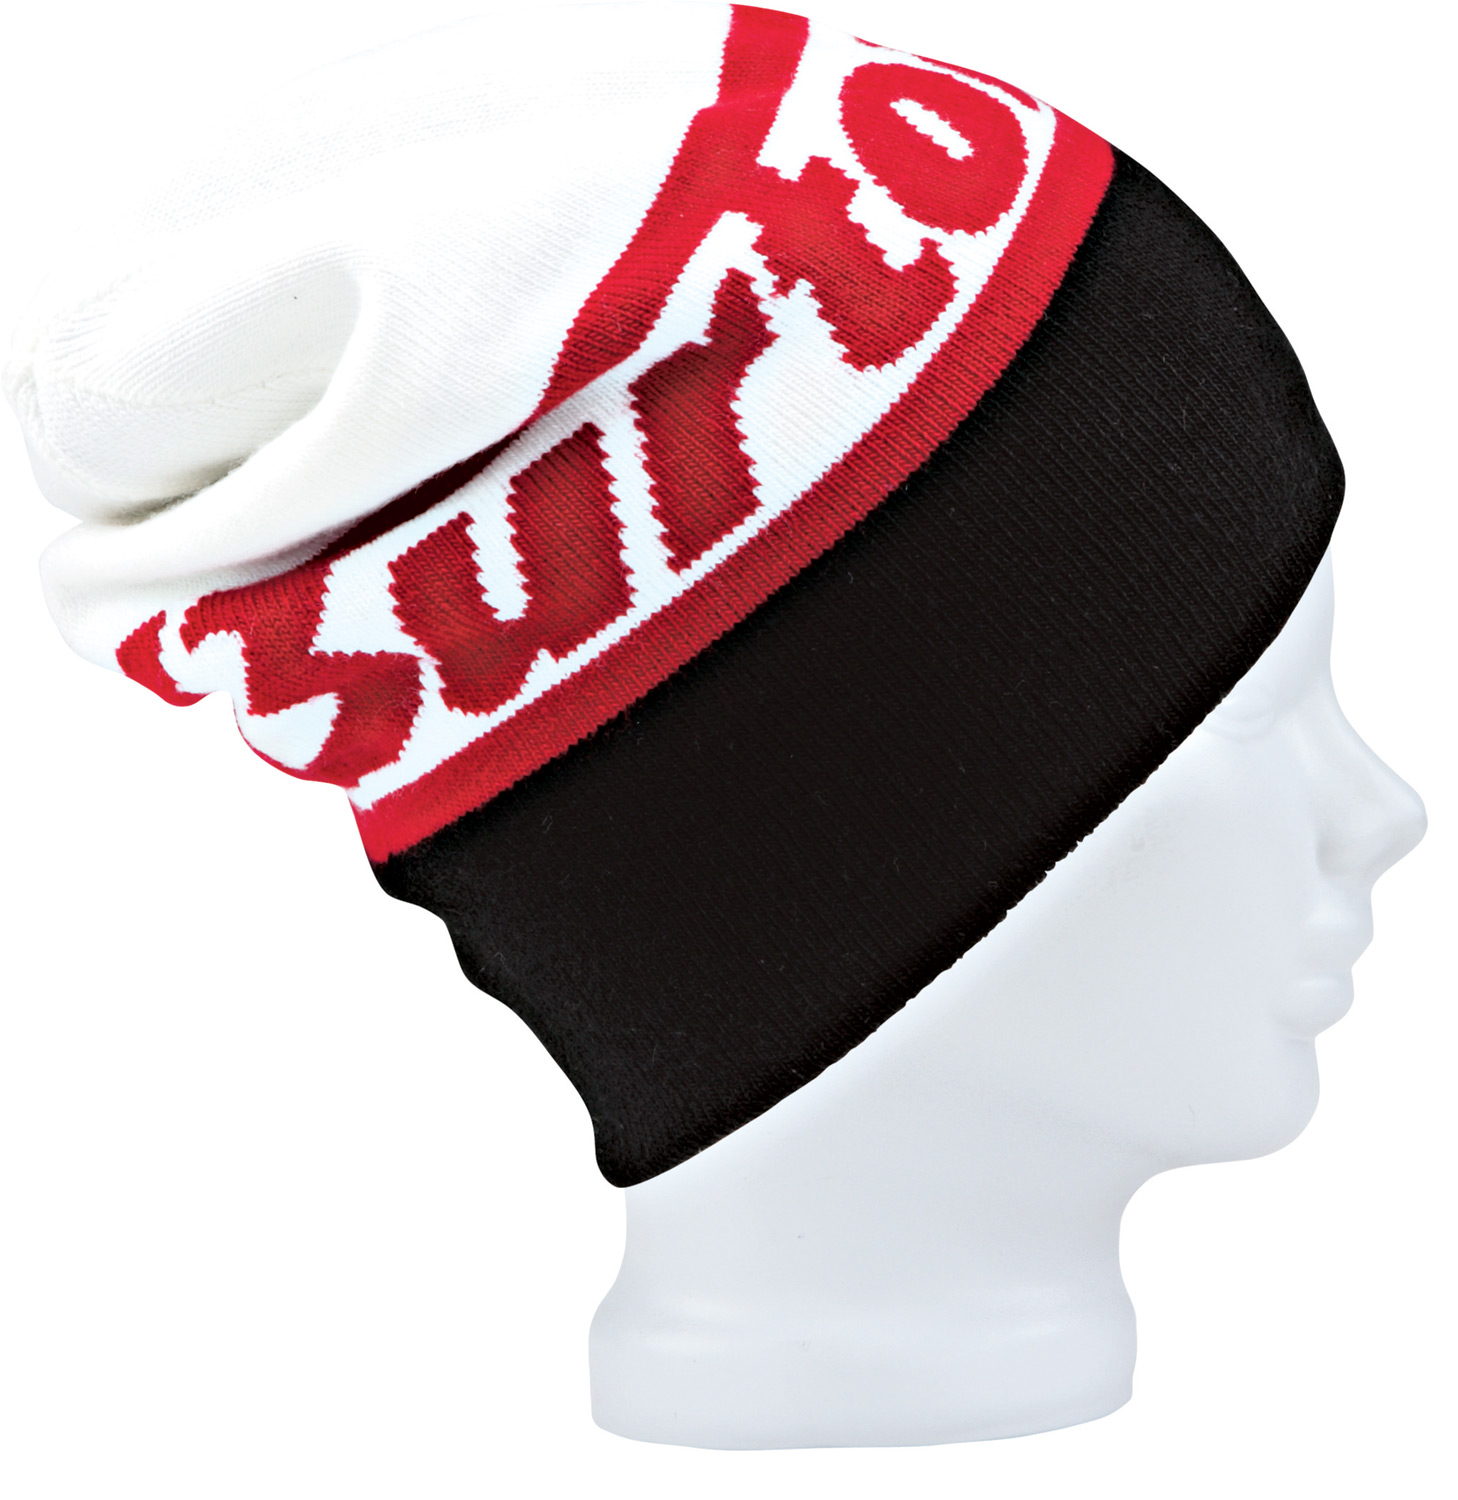 Snowboard Key Features of the Burton Marquee Beanie: Skully Fit One Size Fits All Reversible Jacquard Logo Beanie Colored Blocked Word Mark with Stripes on Reverse 100% Acrylic/Brimmed Beanie - $20.95